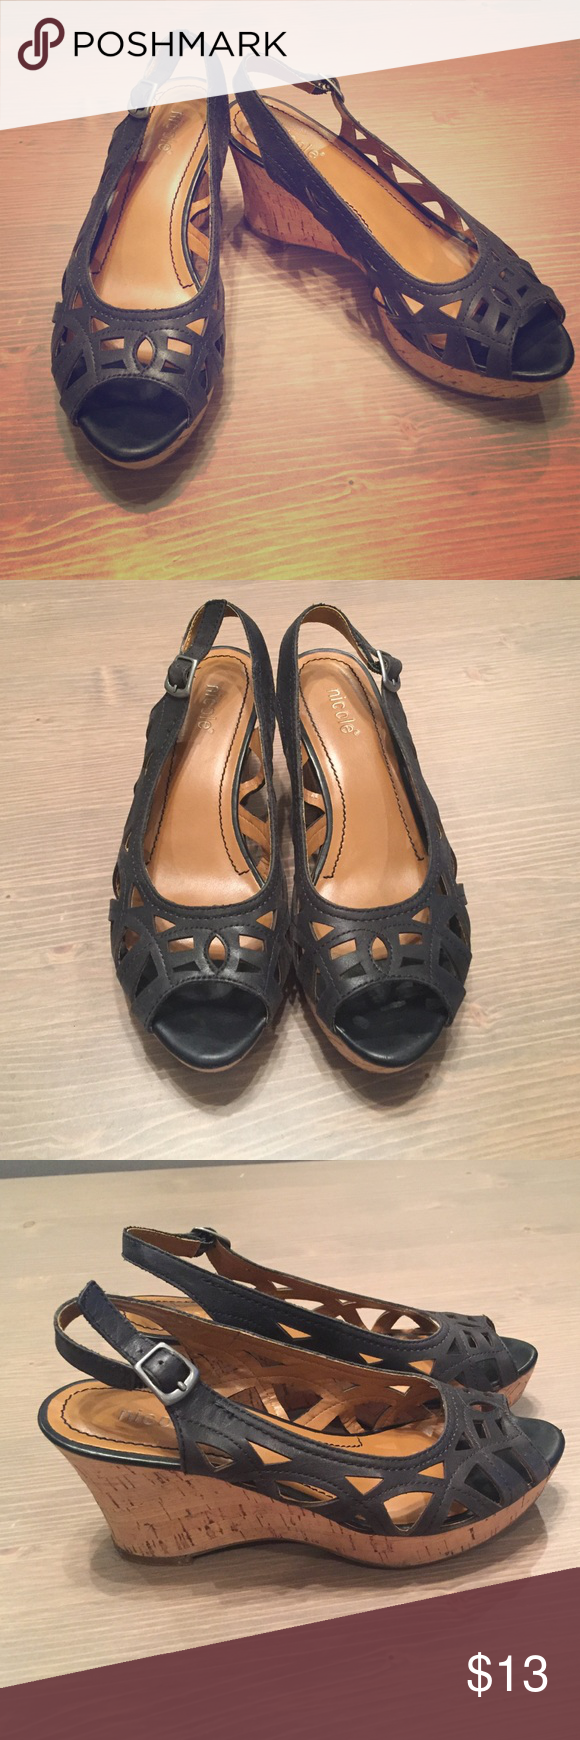 """Nicole leather wedges Leather sling back wedges. 3"""" heel Nicole by Nicole Miller Shoes Wedges"""